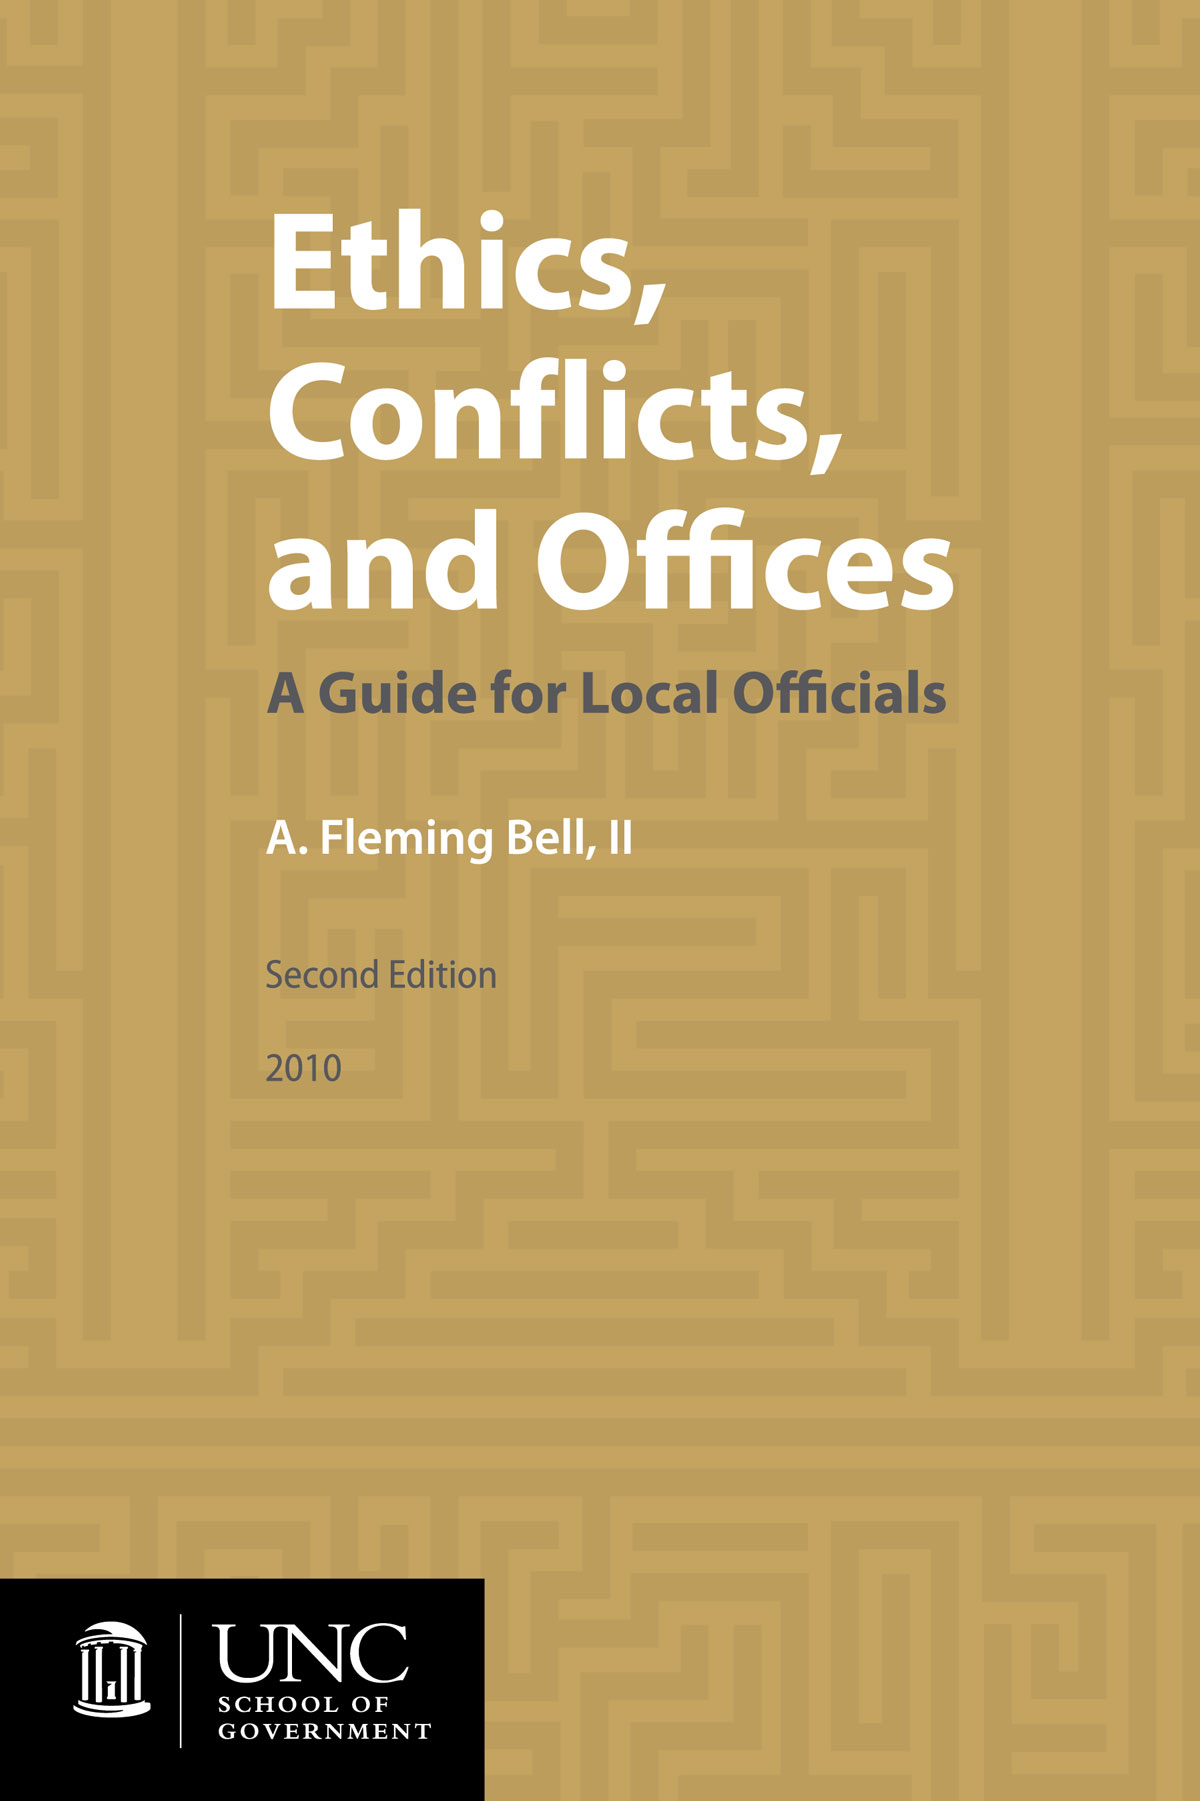 Cover image for Ethics, Conflicts, and Offices: A Guide for Local Officials, Second Edition